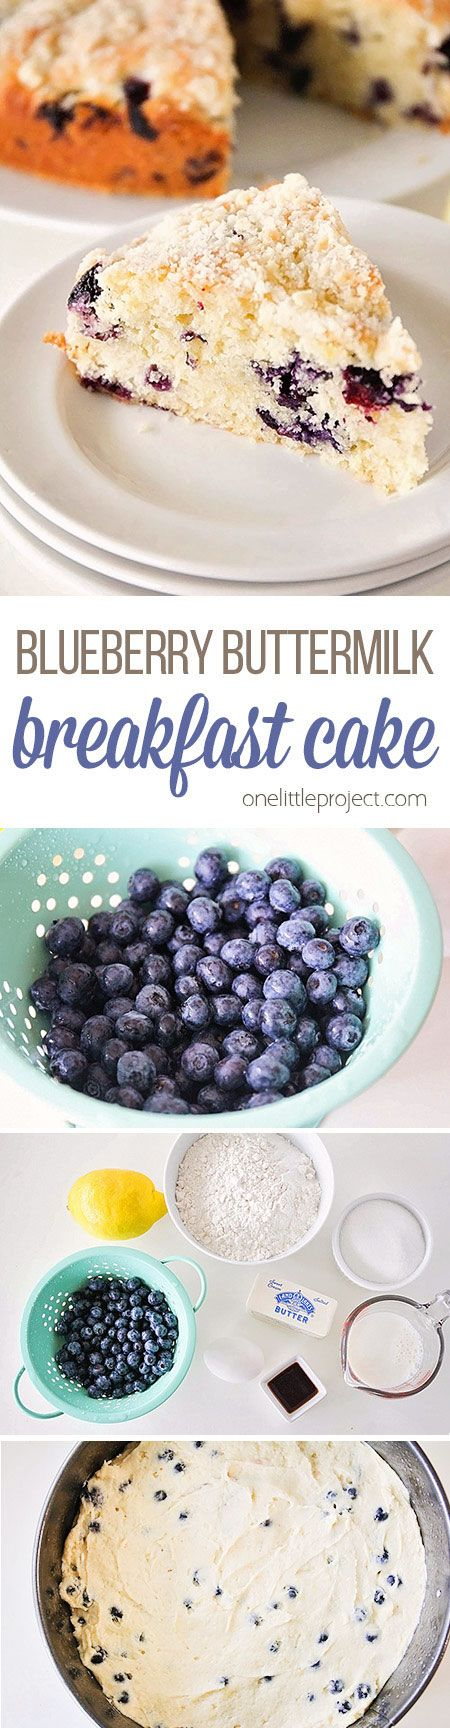 This blueberry buttermilk breakfast cake is DELICIOUS! Loaded with juicy blueberries and topped with a buttery streusel. Perfect for breakfast or anytime! Mmmm...